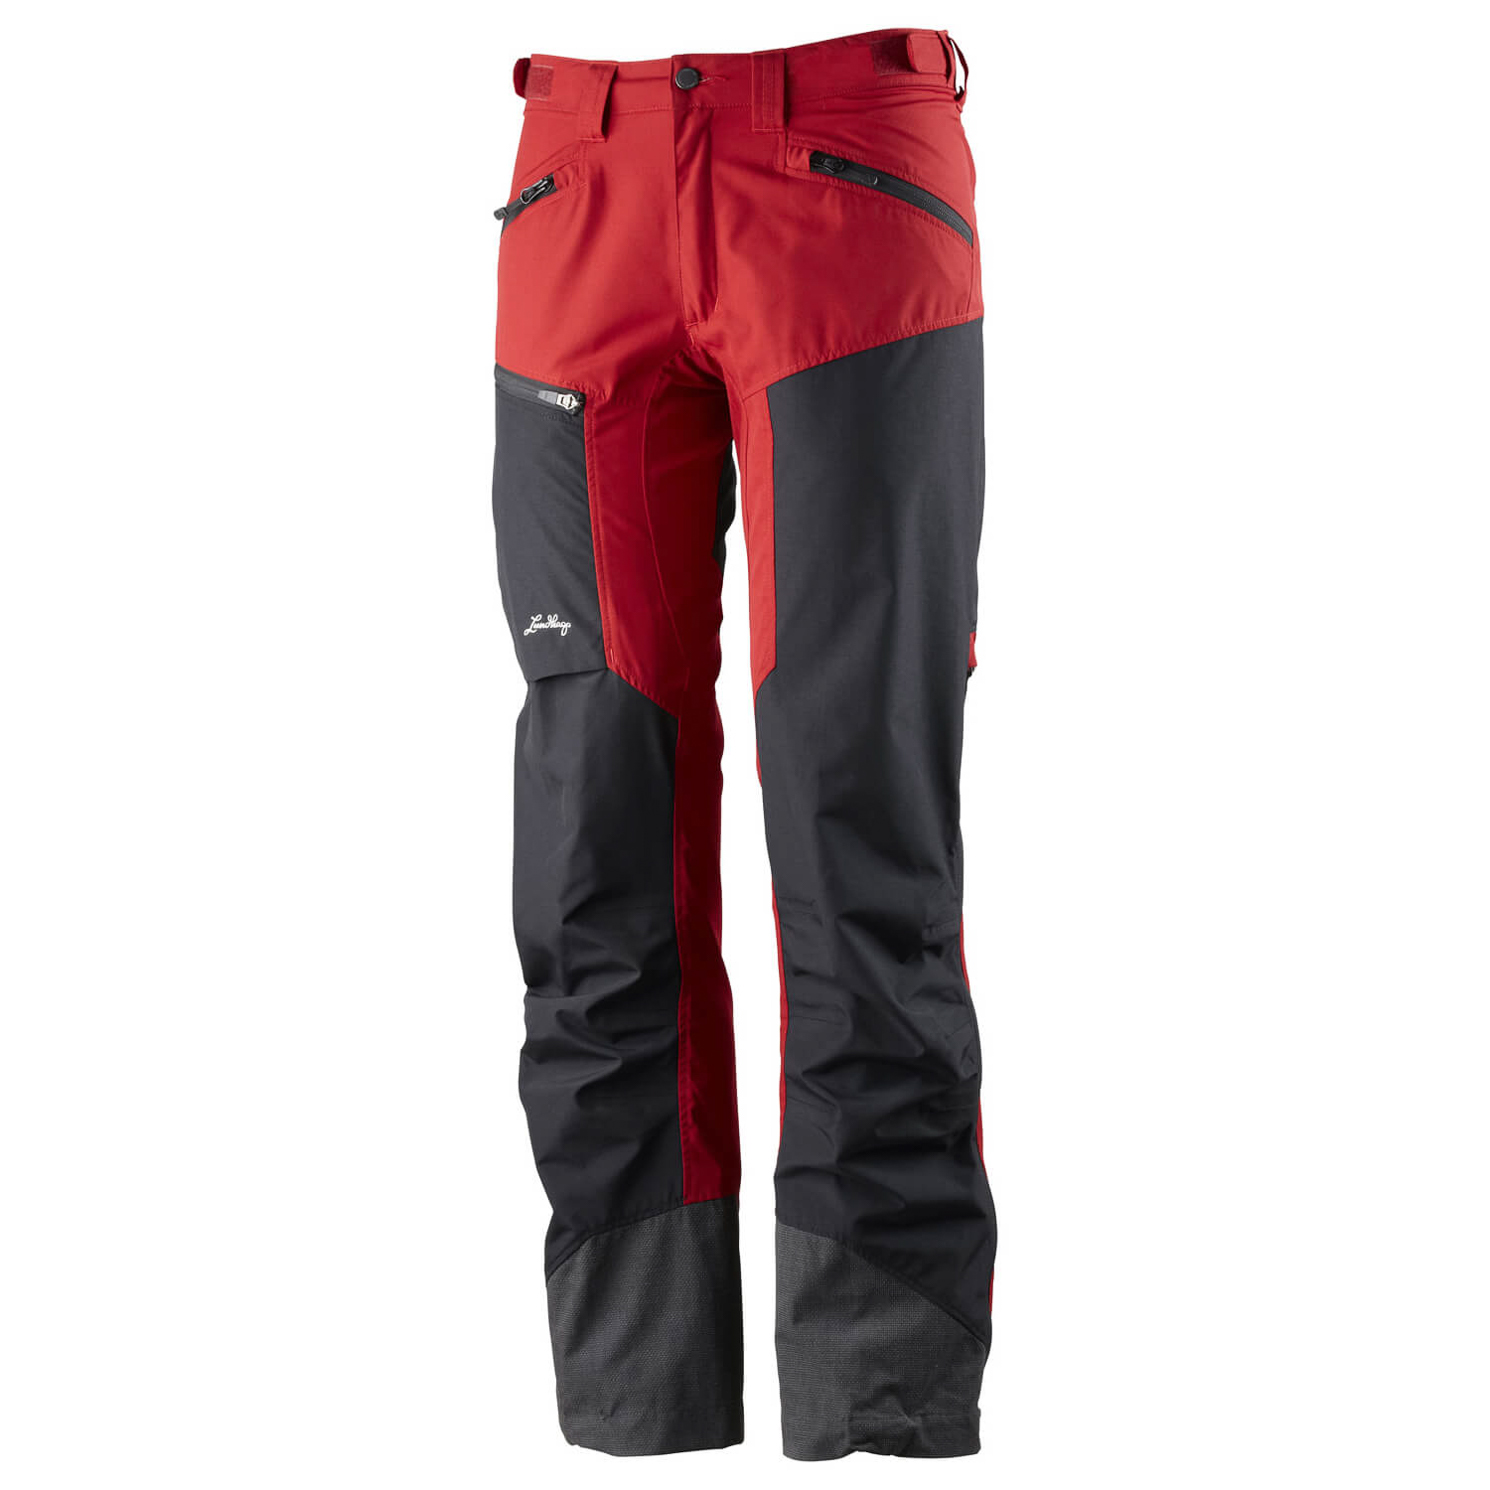 Original Zipravs Lightweight Hiking Trekking Pants Trousers For Women